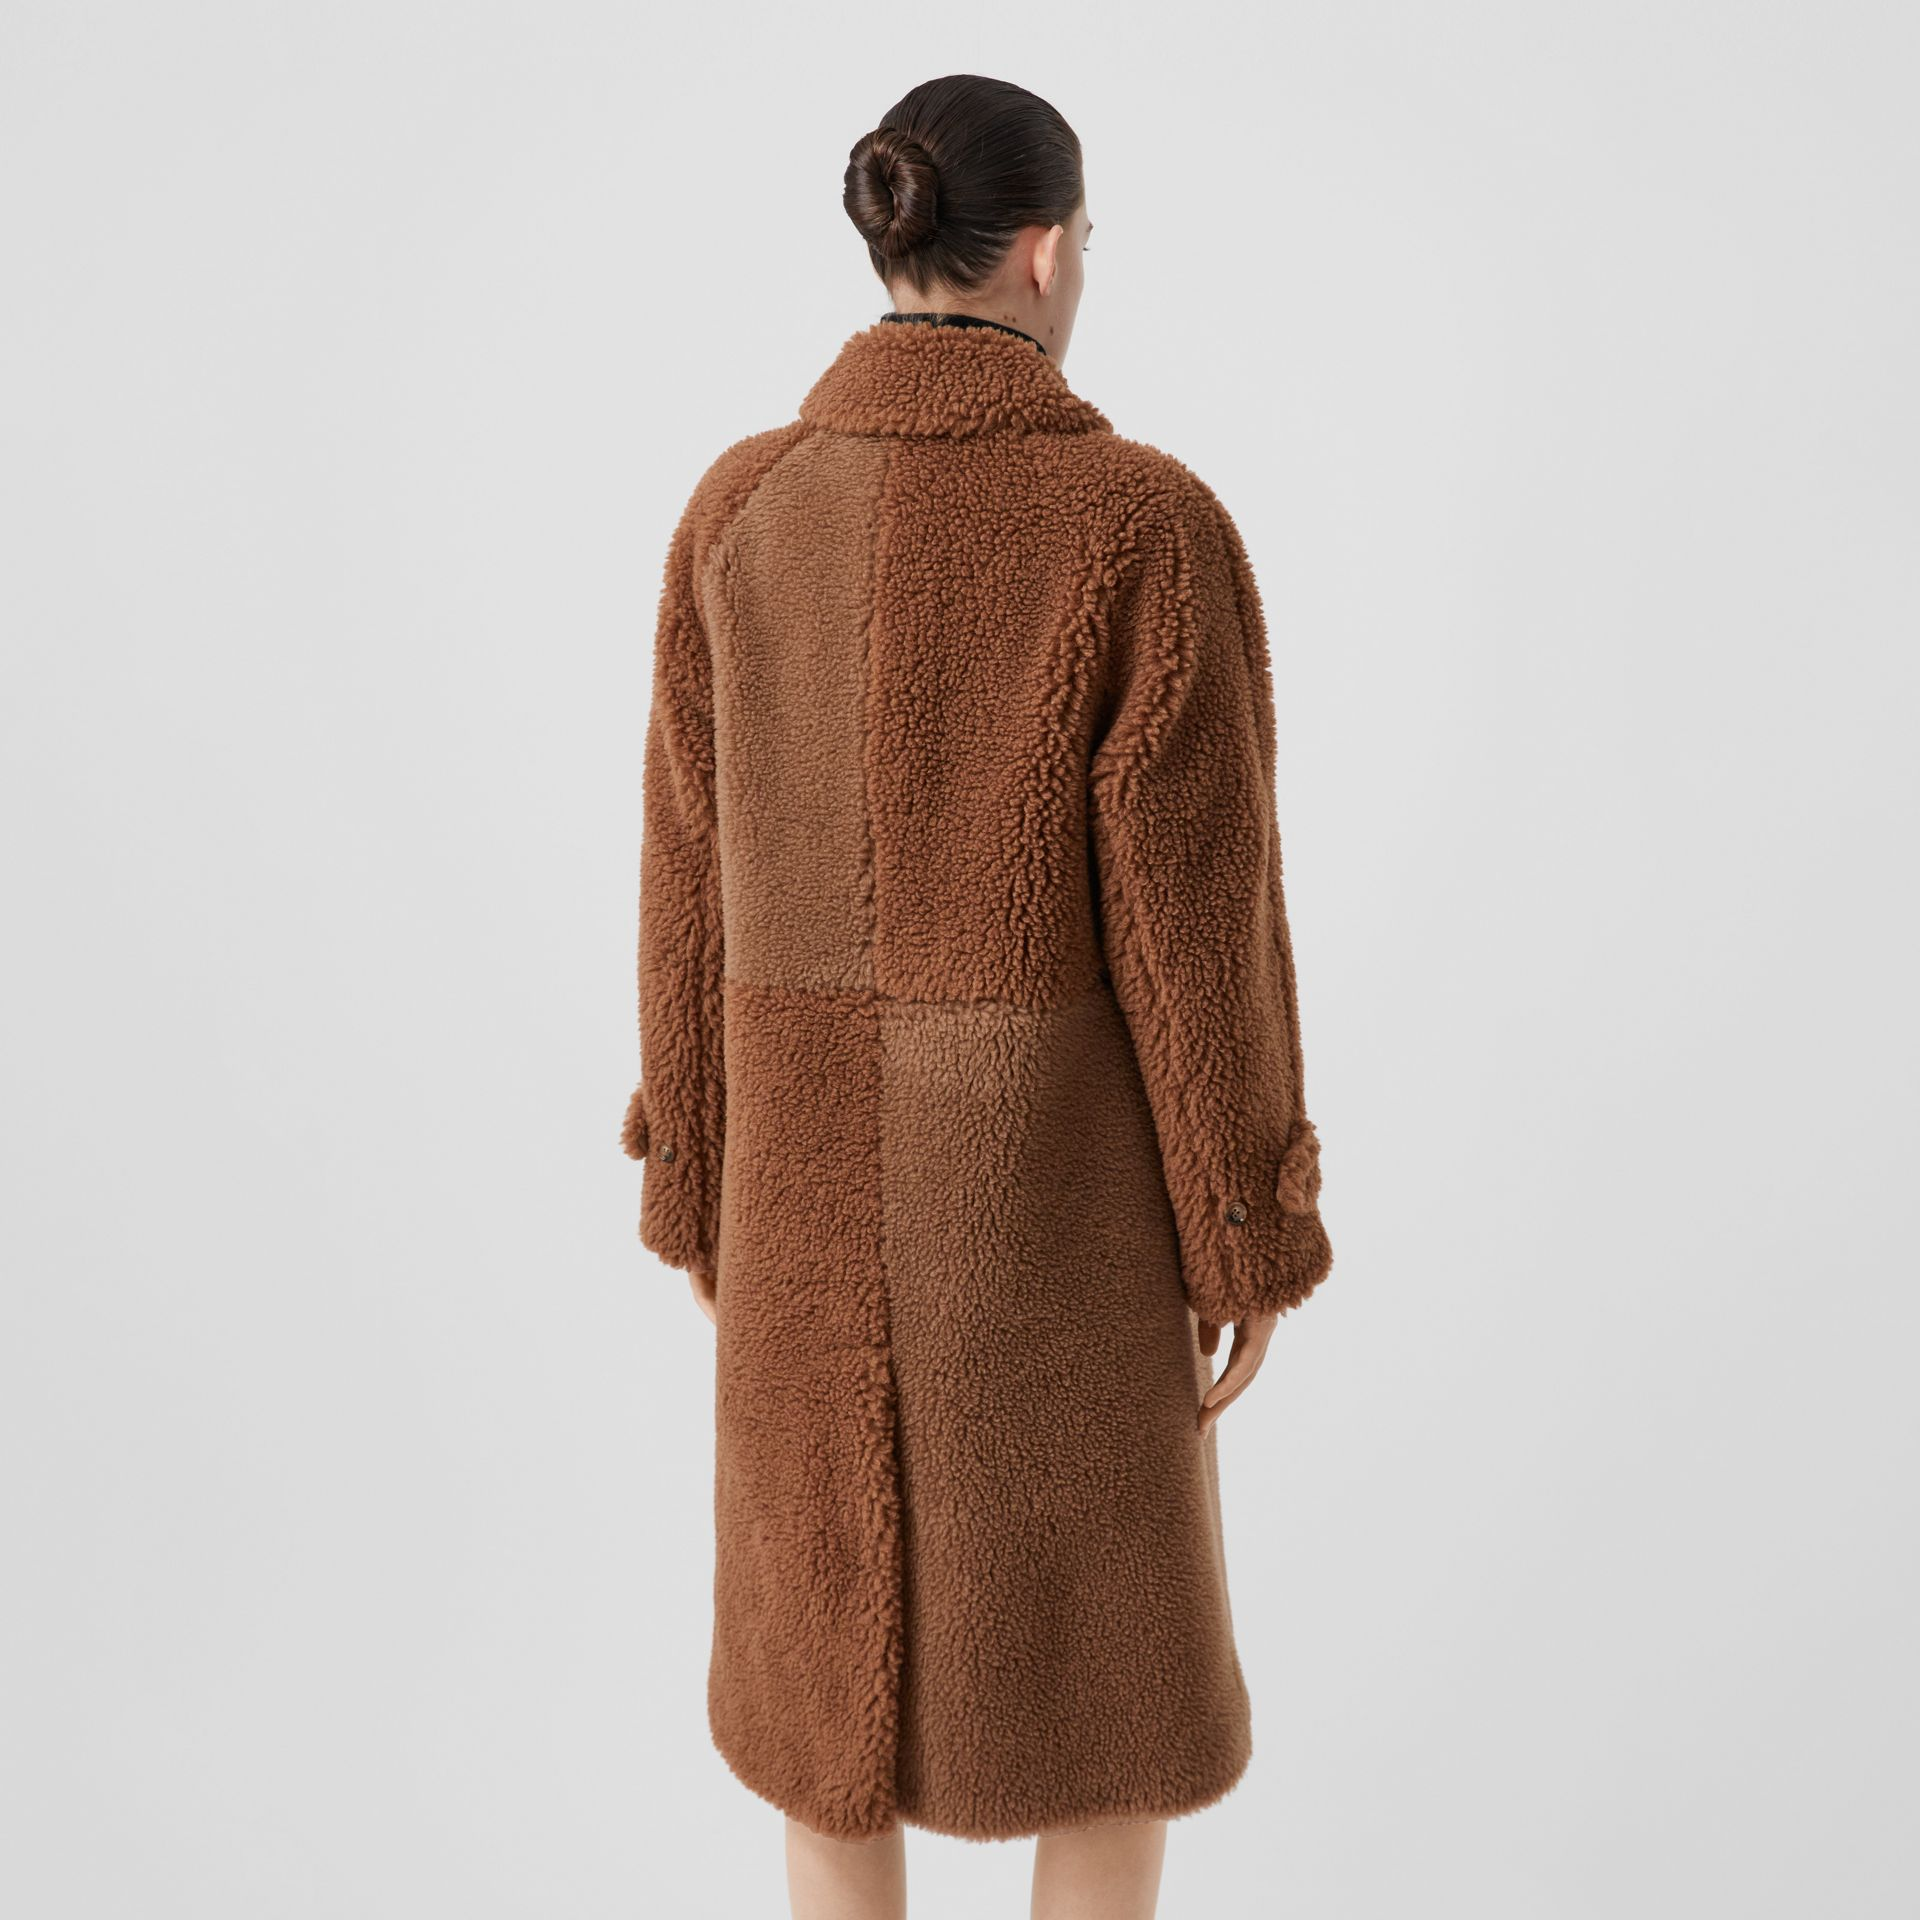 Faux Shearling and Camel Hair Blend Coat in Brown - Women | Burberry United Kingdom - gallery image 2